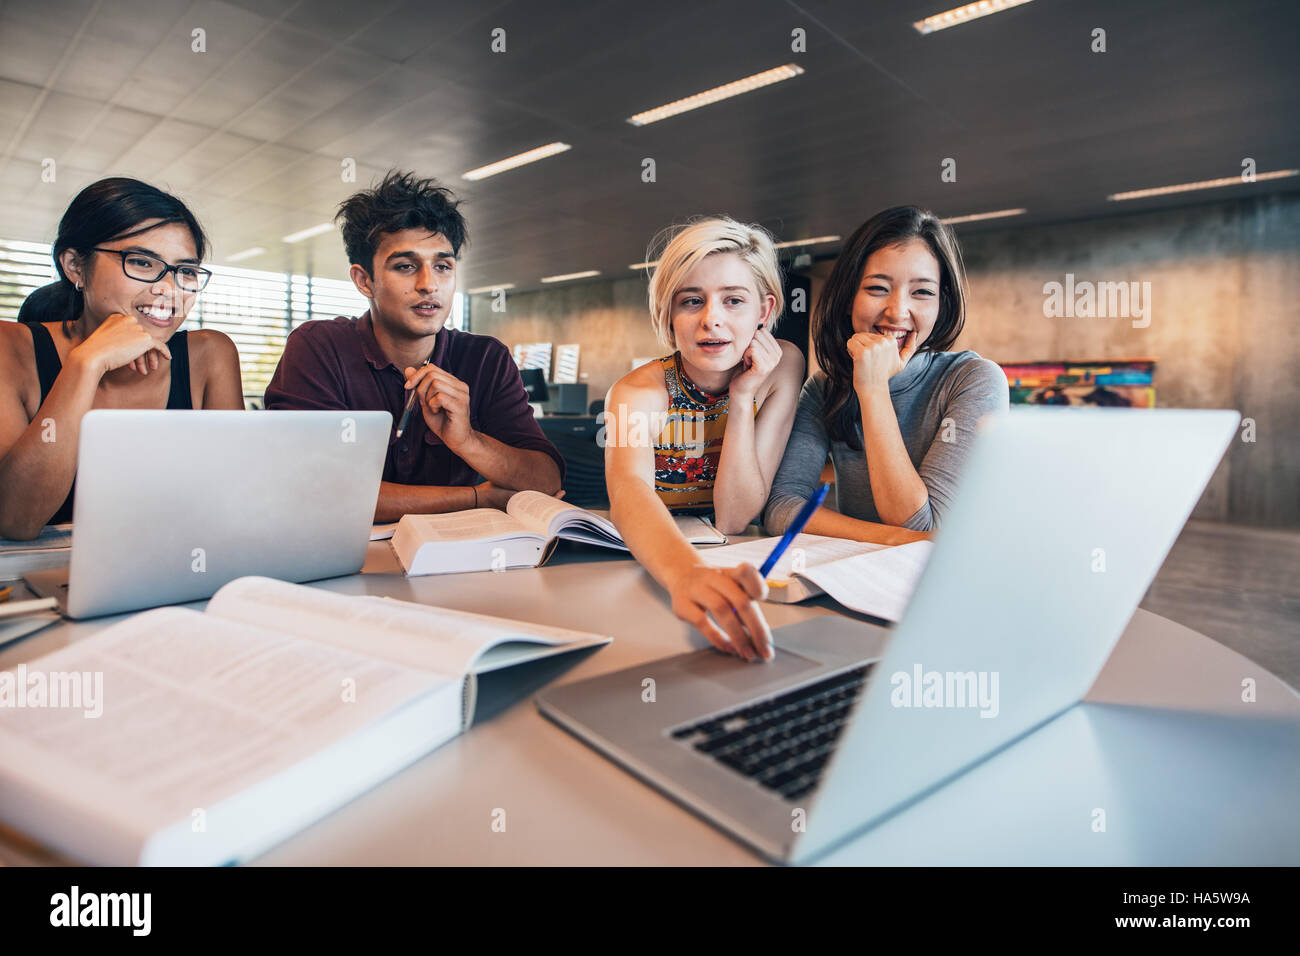 College students using laptop while sitting at table. L'étude en groupe de travail scolaire. Photo Stock